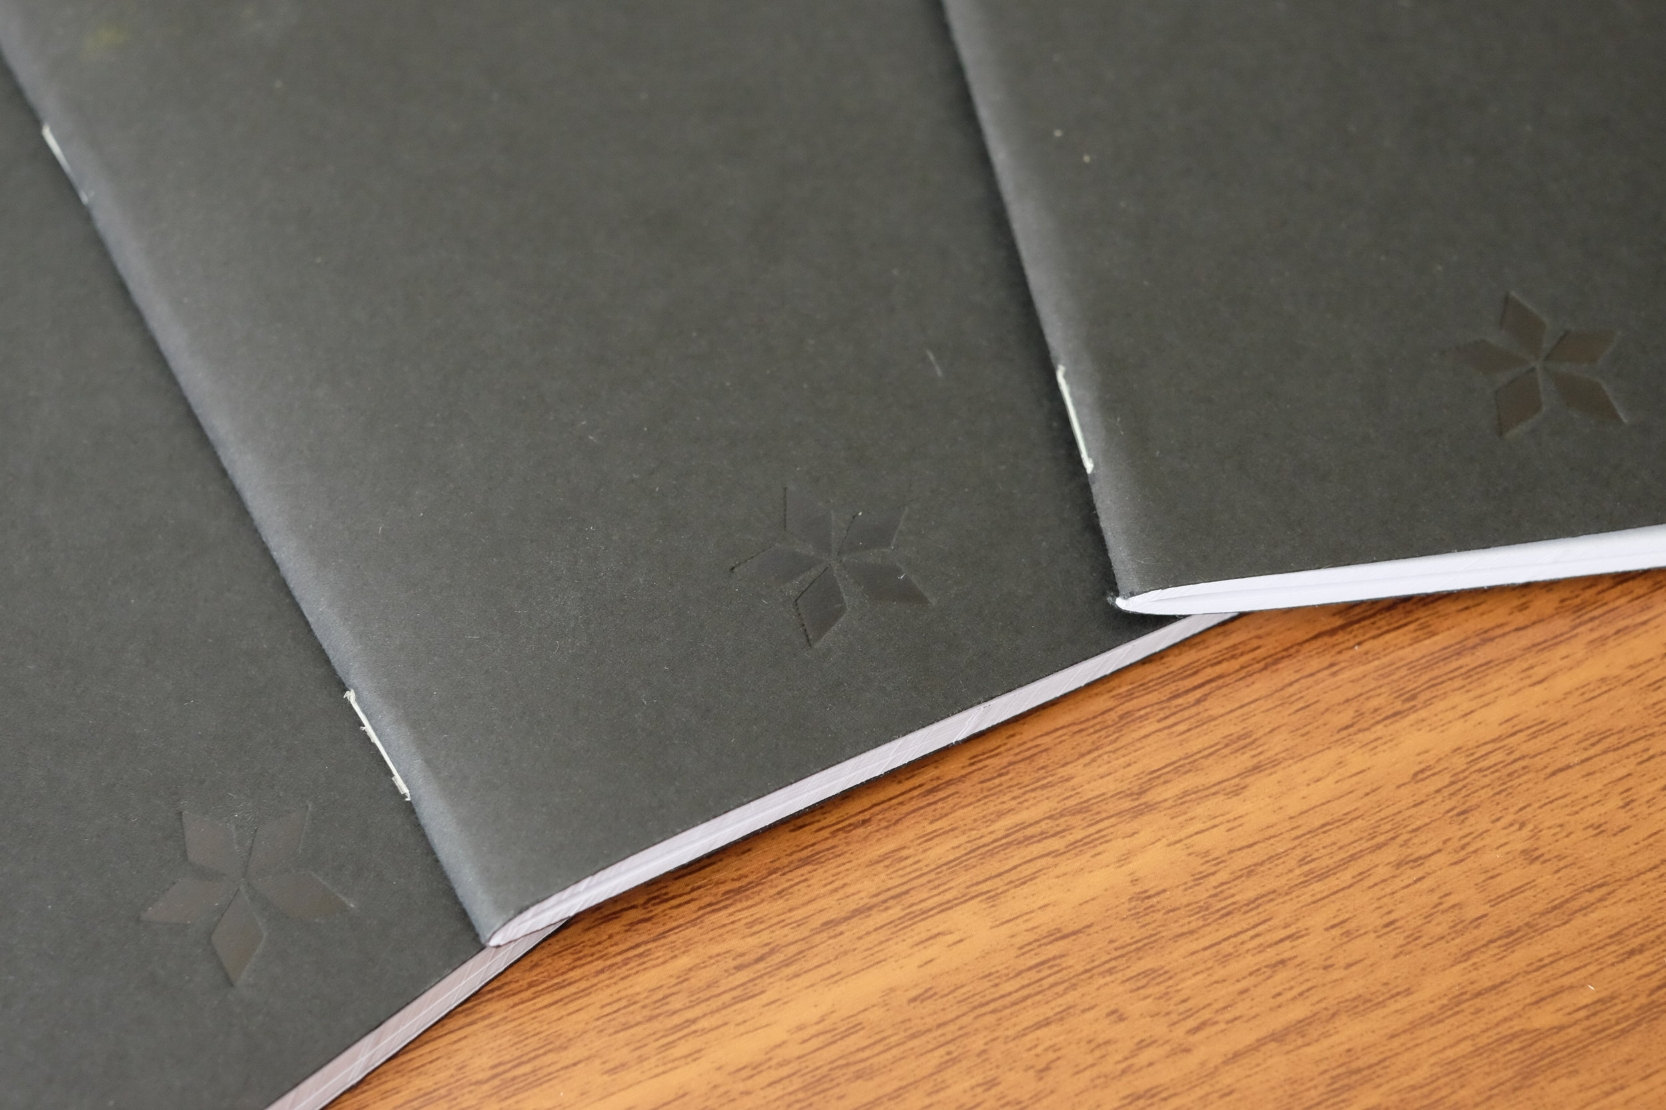 Darkstar-Collection-Notebooks